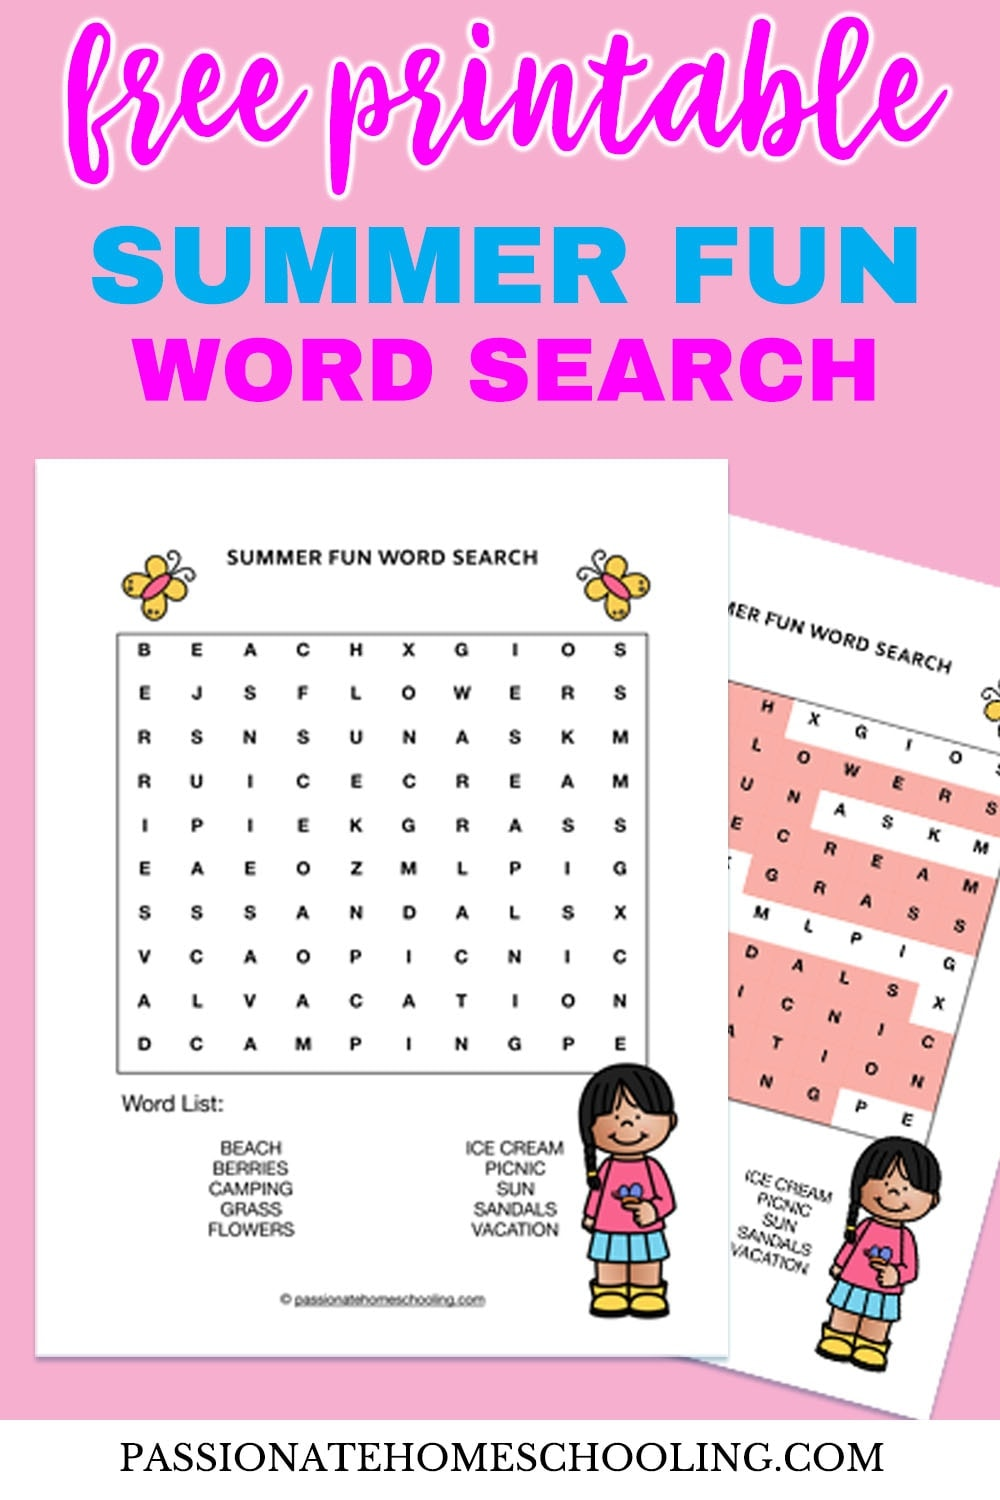 picture relating to Free Printable Word Search for Kids titled Absolutely free Printable Summer time Pleasurable Term Seem - Pionate Homeschooling